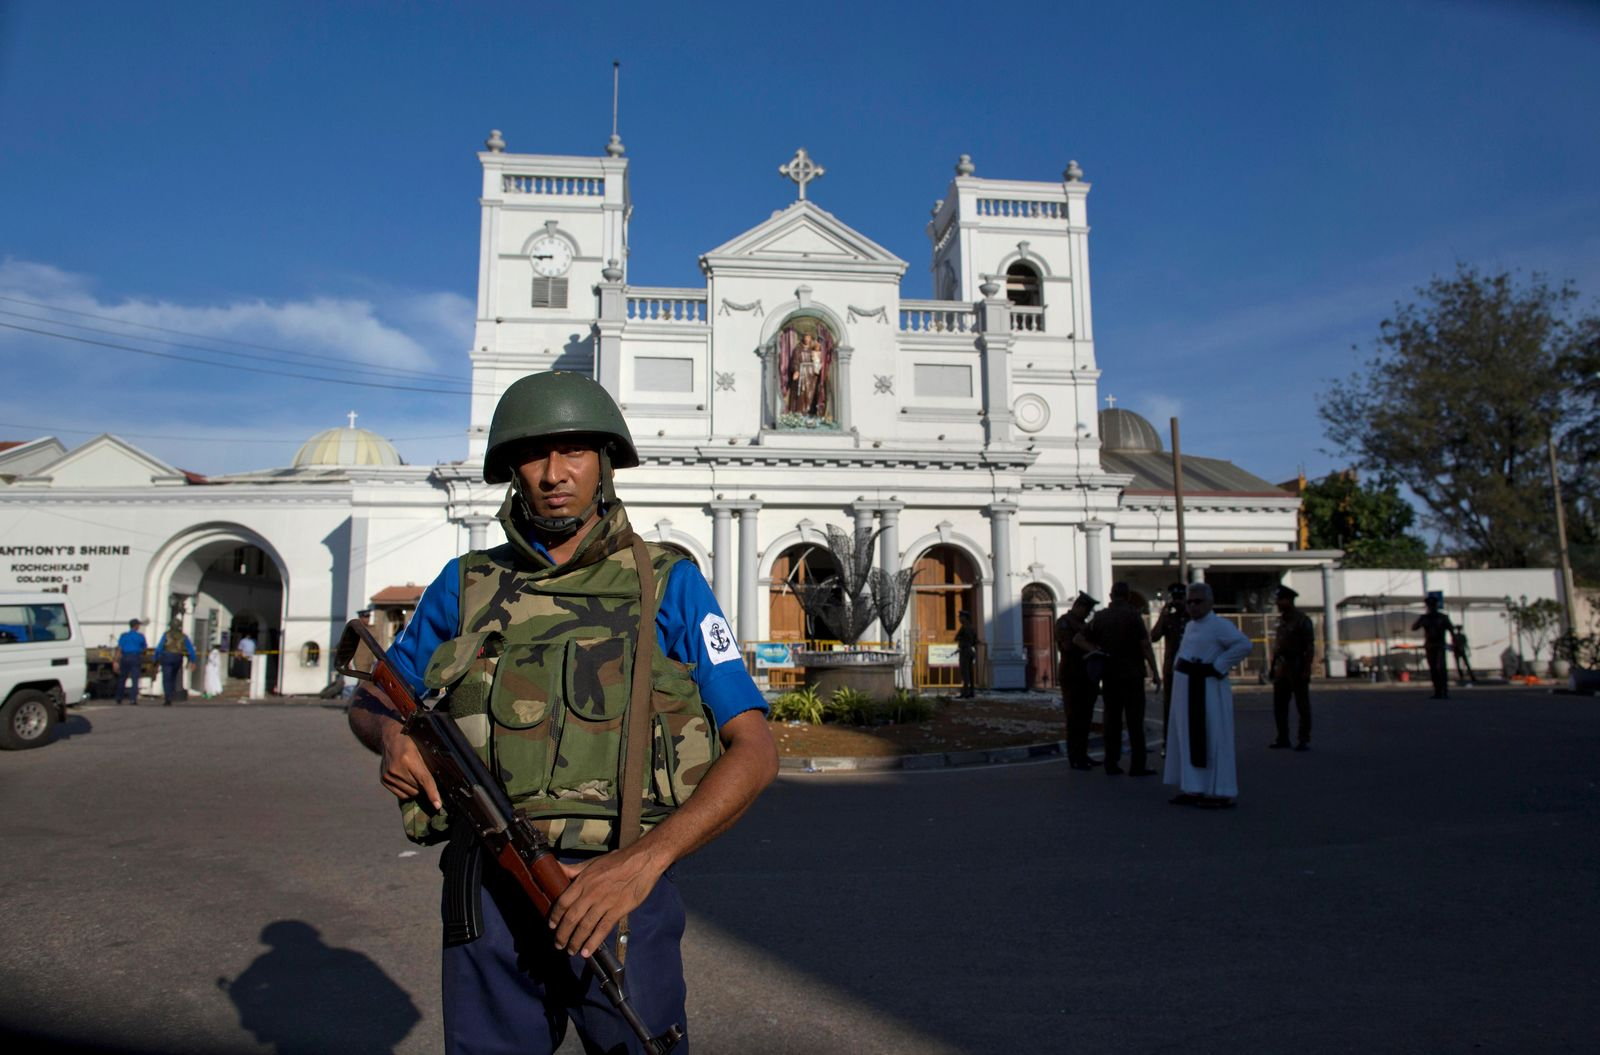 Sri Lankan air force officers and clergy stand outside St. Anthony's Shrine, a day after a blast in Colombo, Sri Lanka, Monday, April 22, 2019.{ } (AP Photo/Gemunu Amarasinghe)